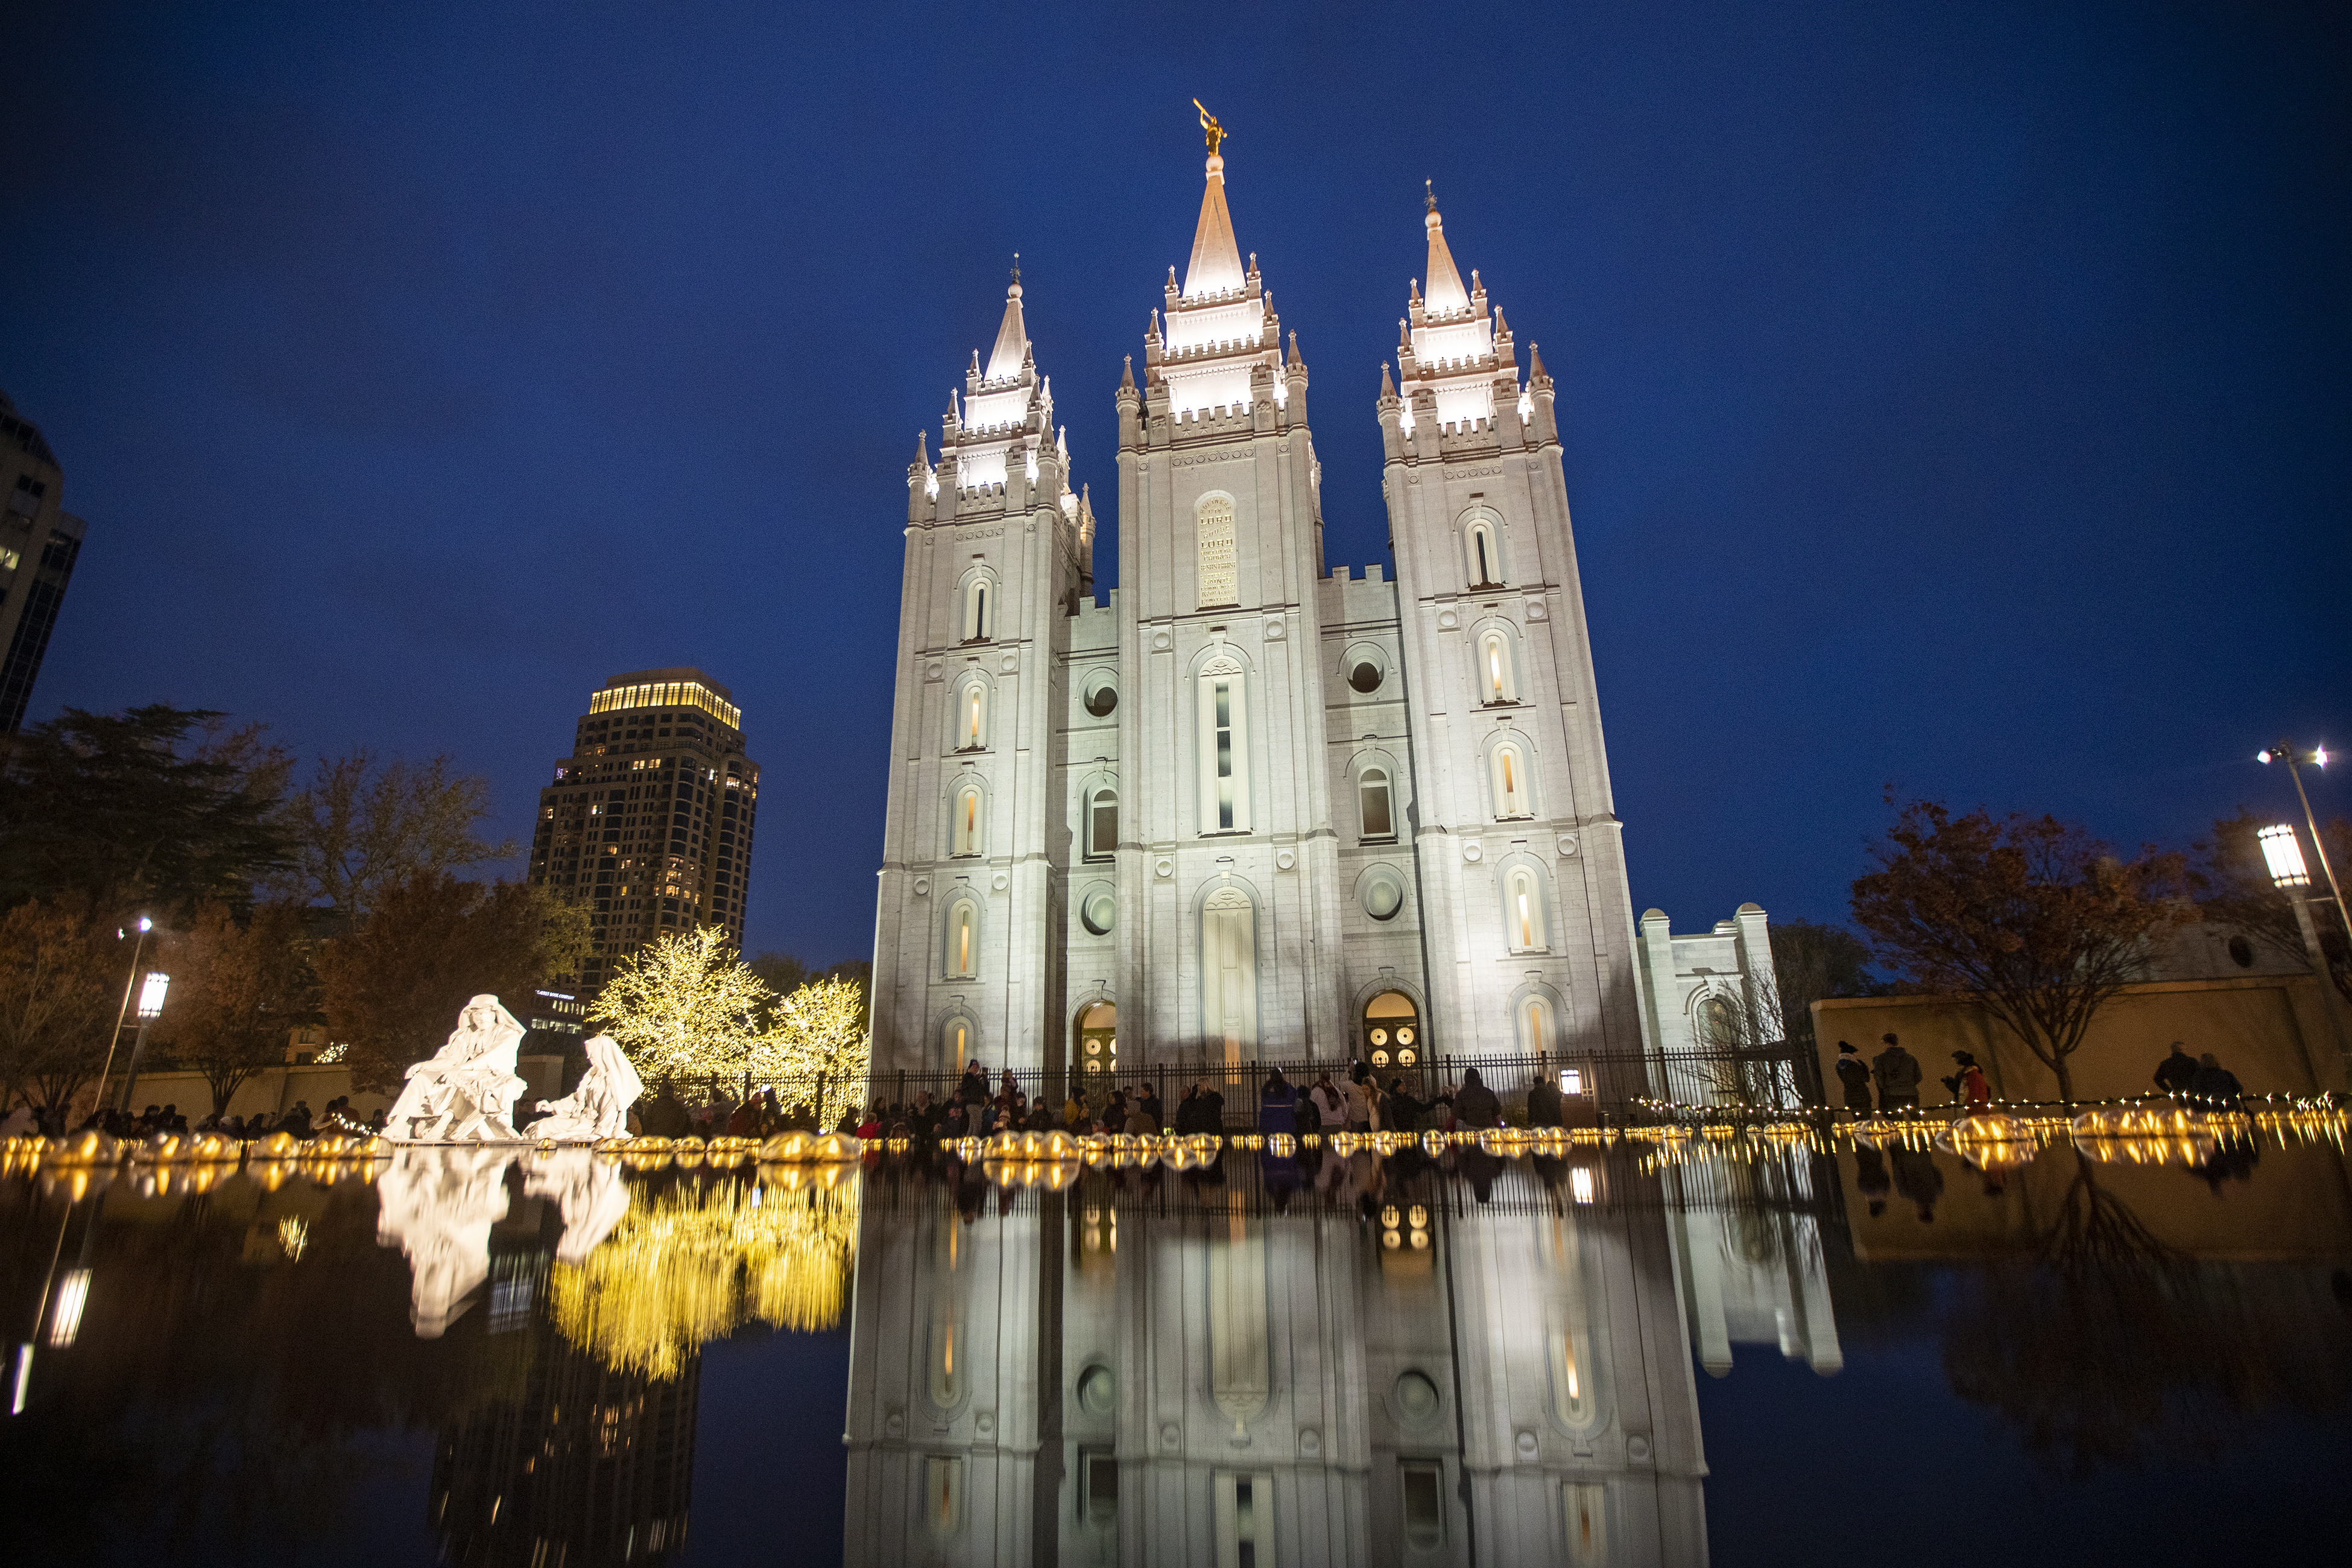 Thousands take in the colors as the lights are turned on at Temple Square in Salt Lake City on Friday, Nov. 23, 2018. In past Christmases, Church leaders have shared some of their favorite Christmas memories that help bring in the spirit of the season.